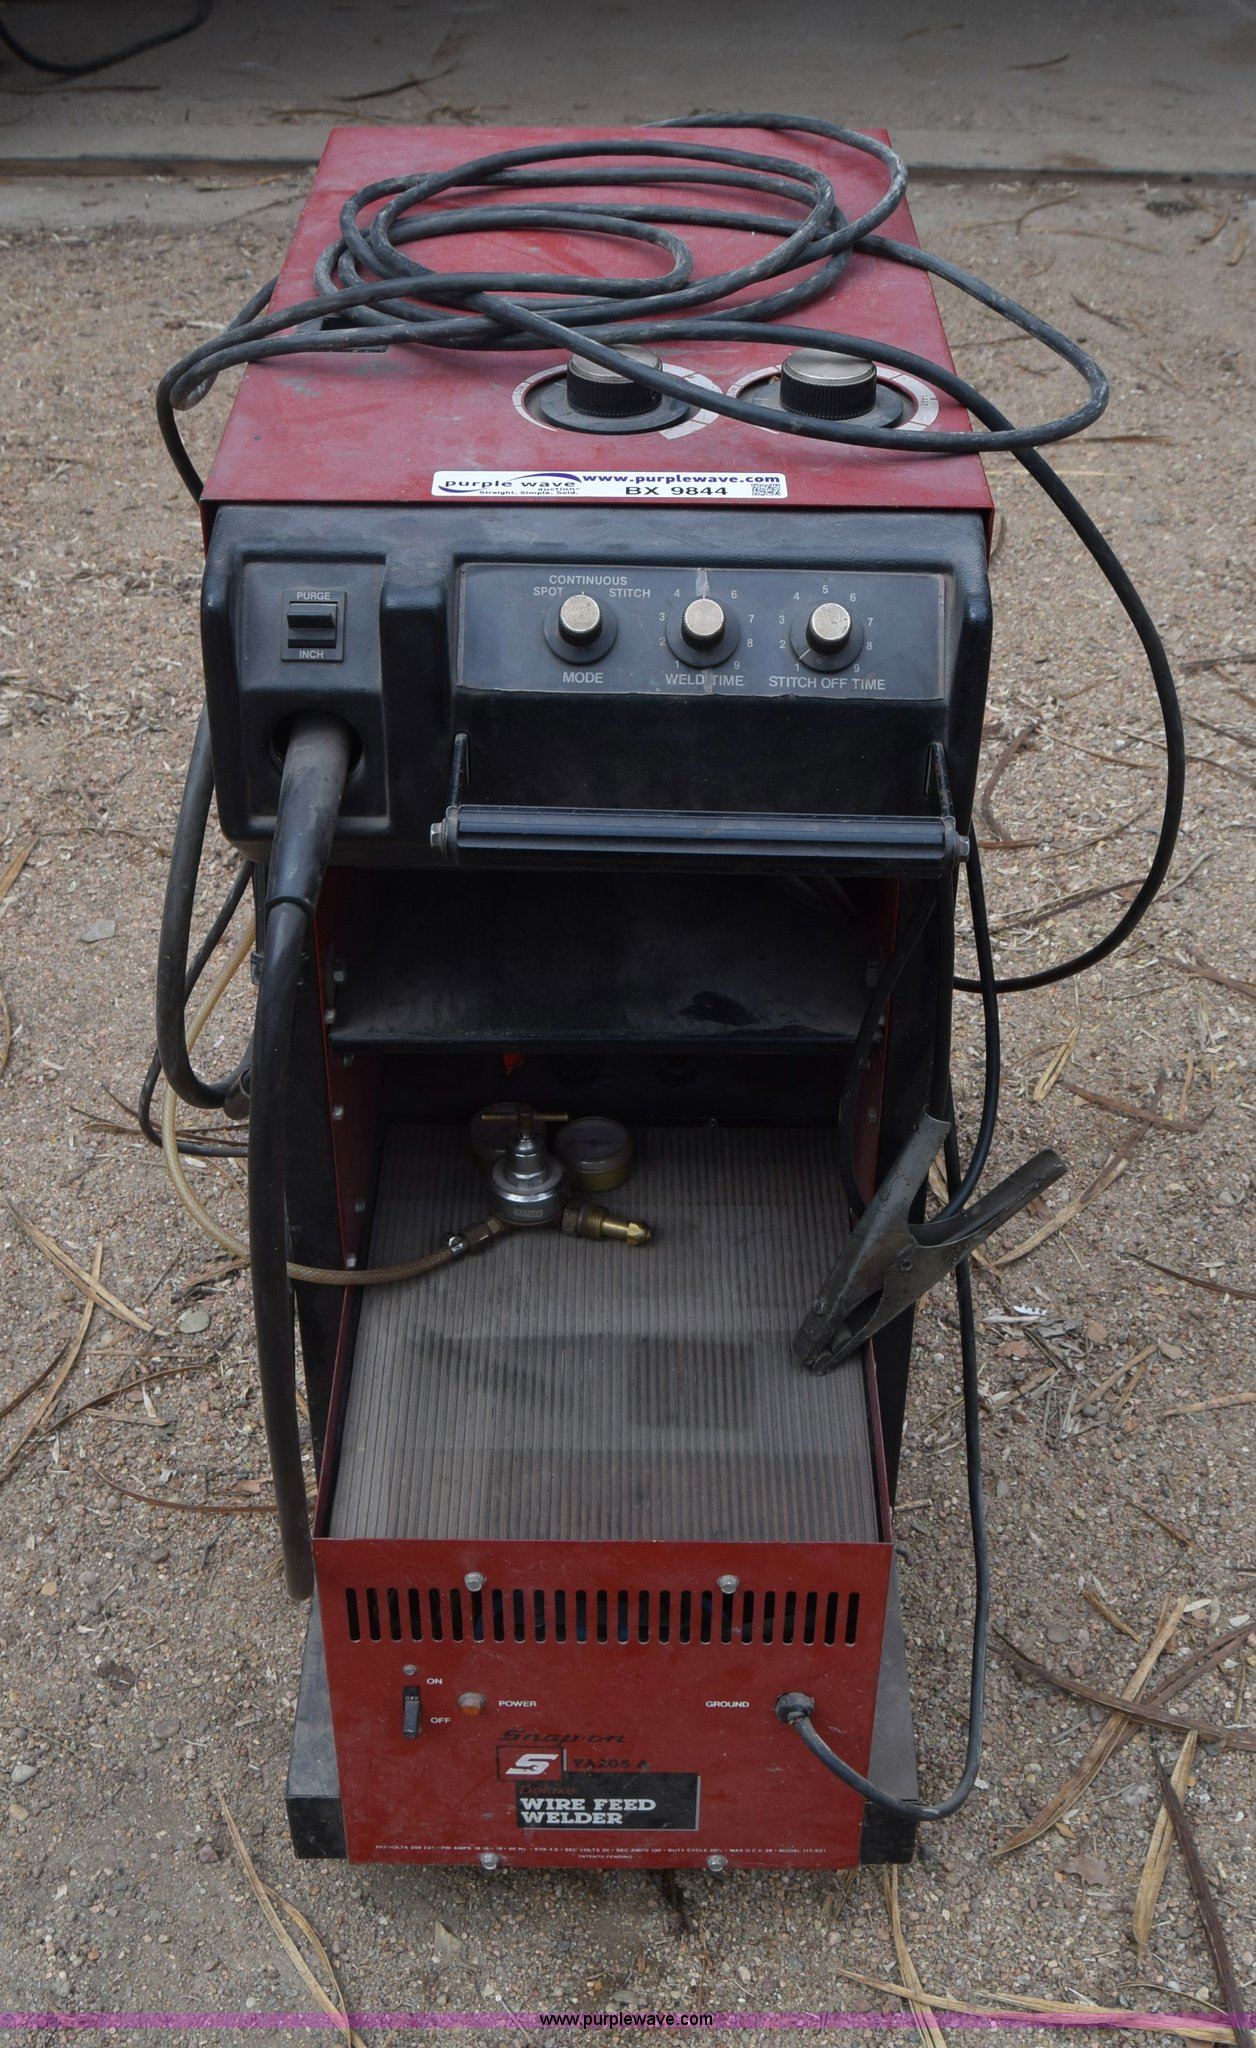 Mig Welder For Sale >> Snap On Ya205a Mig Welder Item Bx9844 Sold March 16 Ag